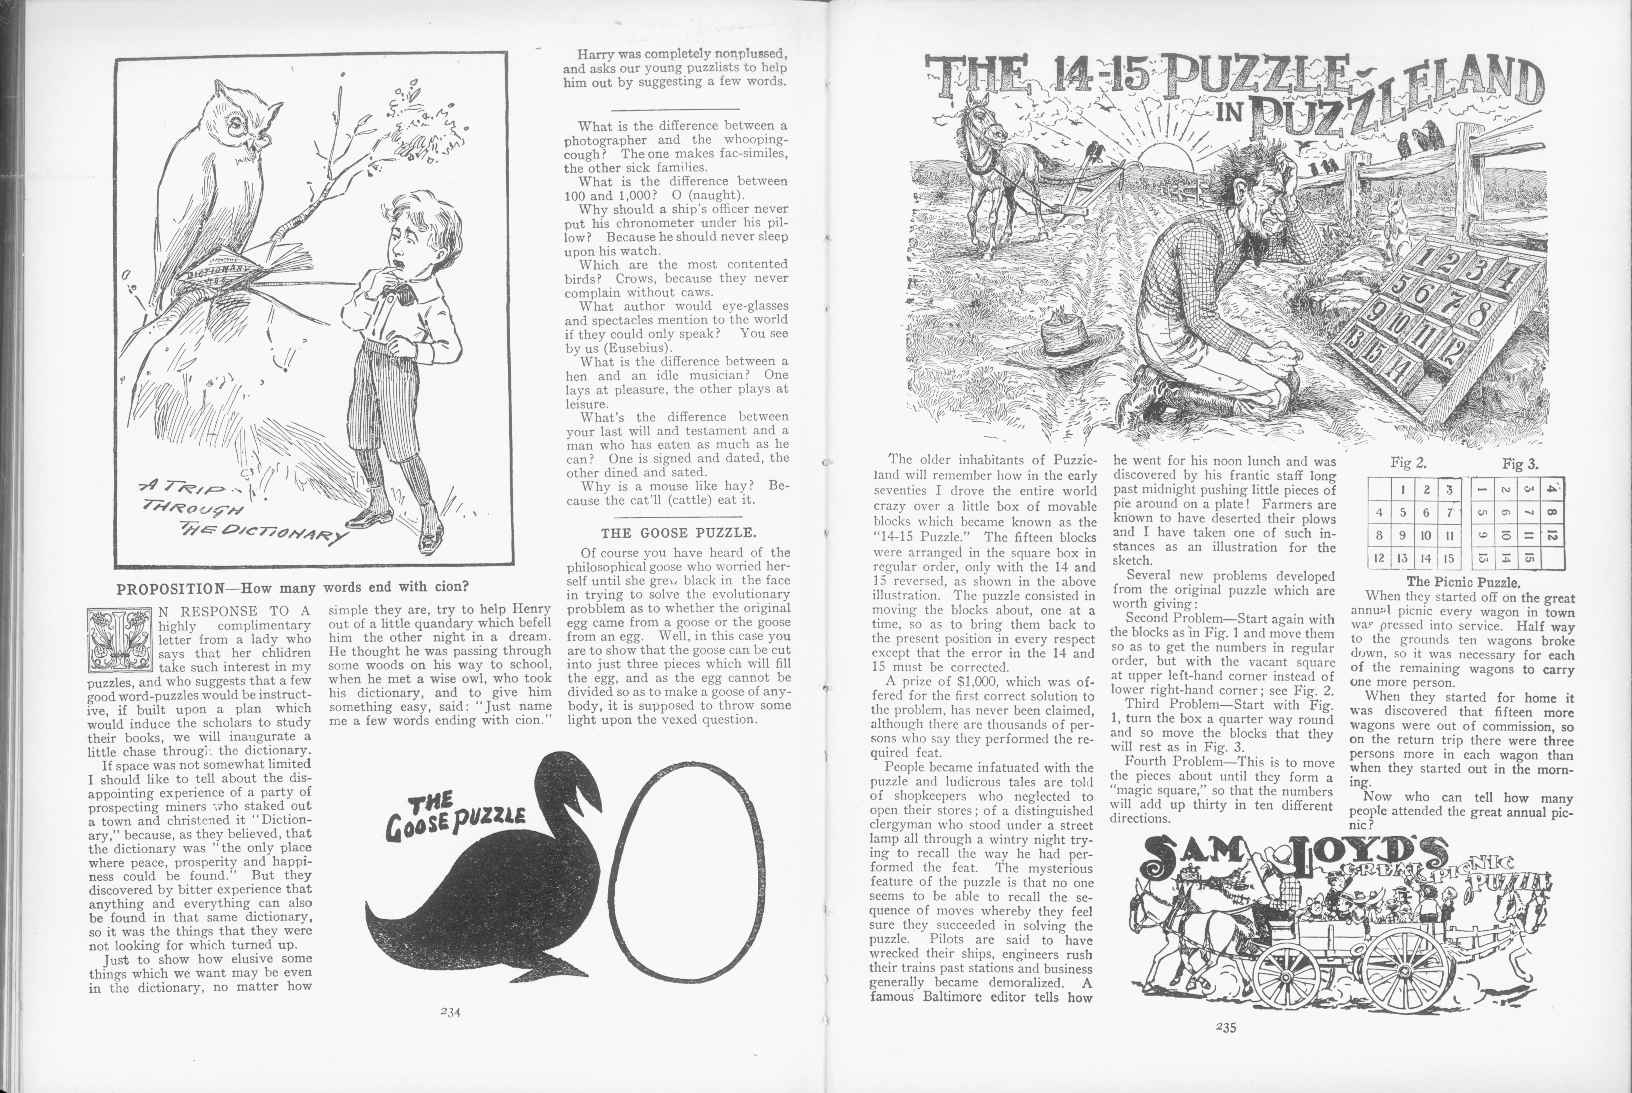 Sam Loyd - Cyclopedia of Puzzles - page 234-235